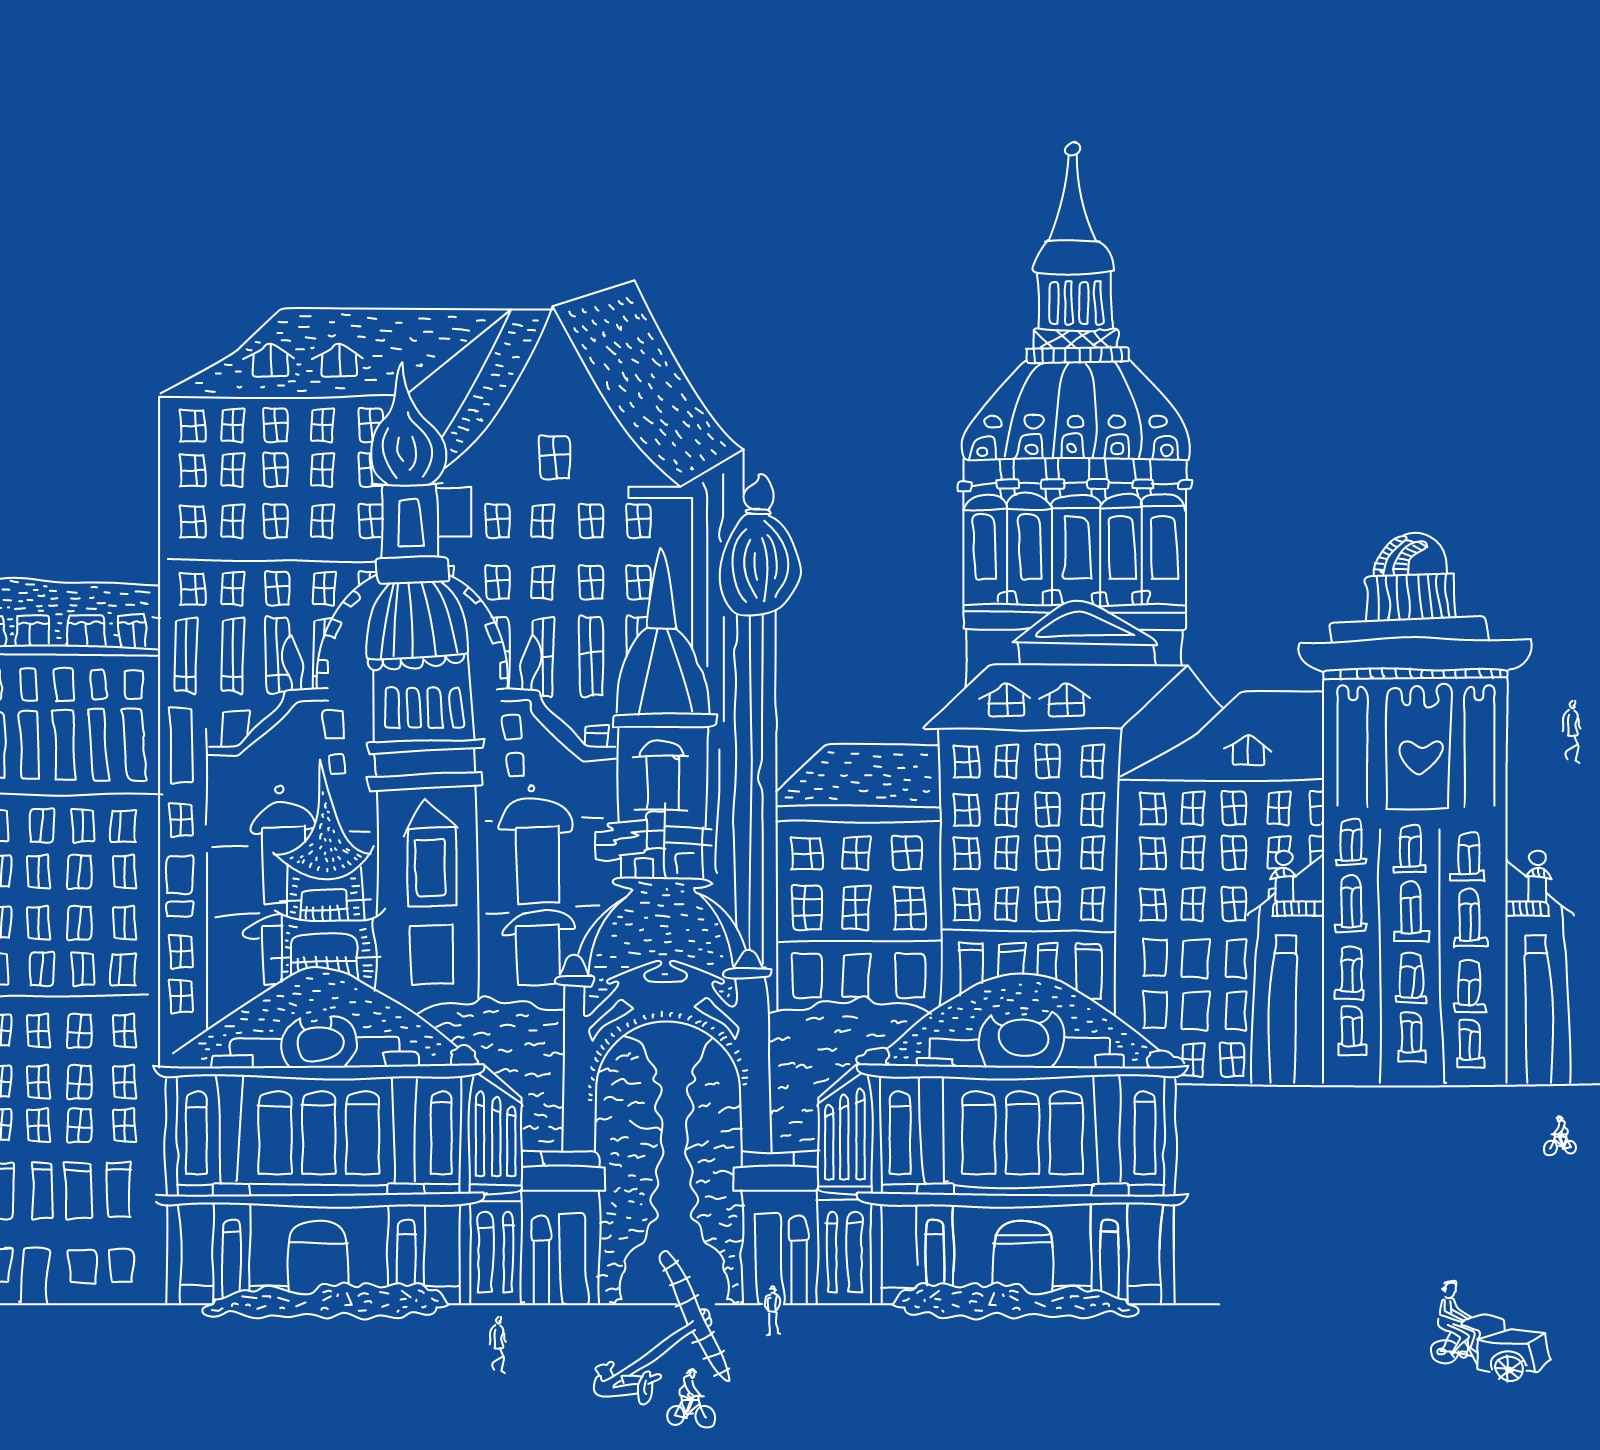 hand drawn line art of buildings on a blue background